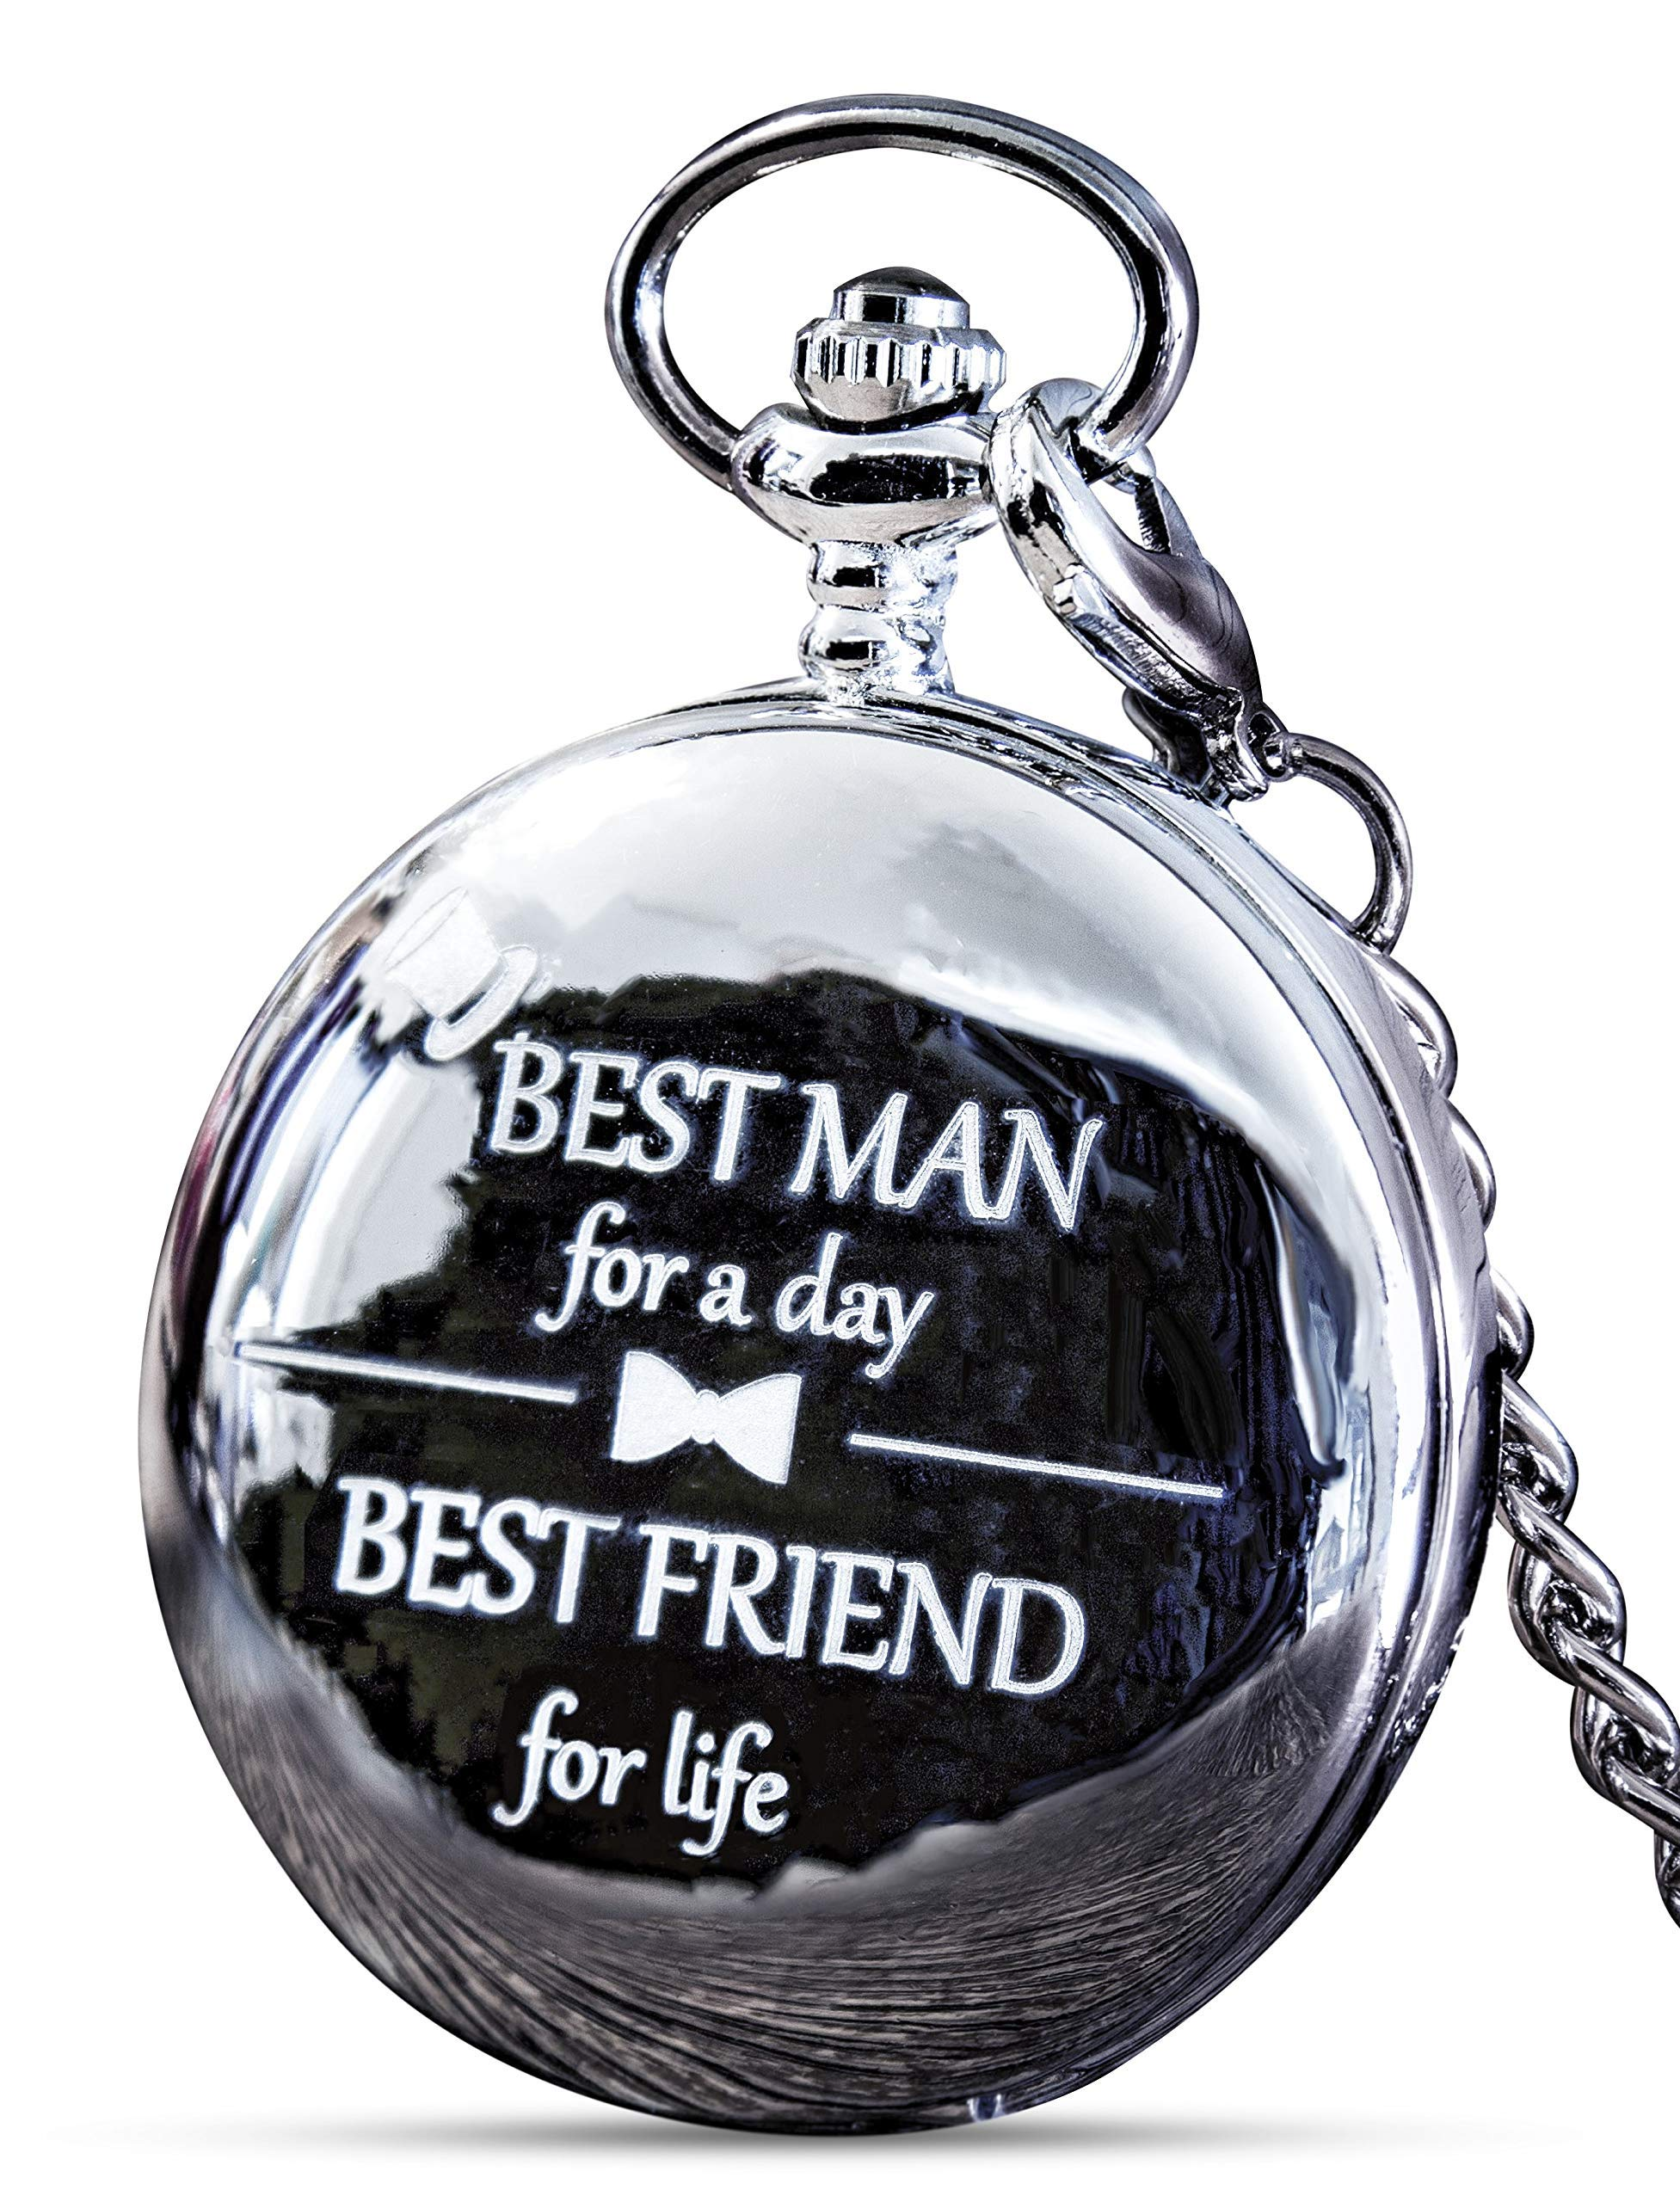 Best Man Gift for Wedding or Proposal - Engraved Best Man Pocket Watch - Luxury Wedding Gift by FREDERICK JAMES